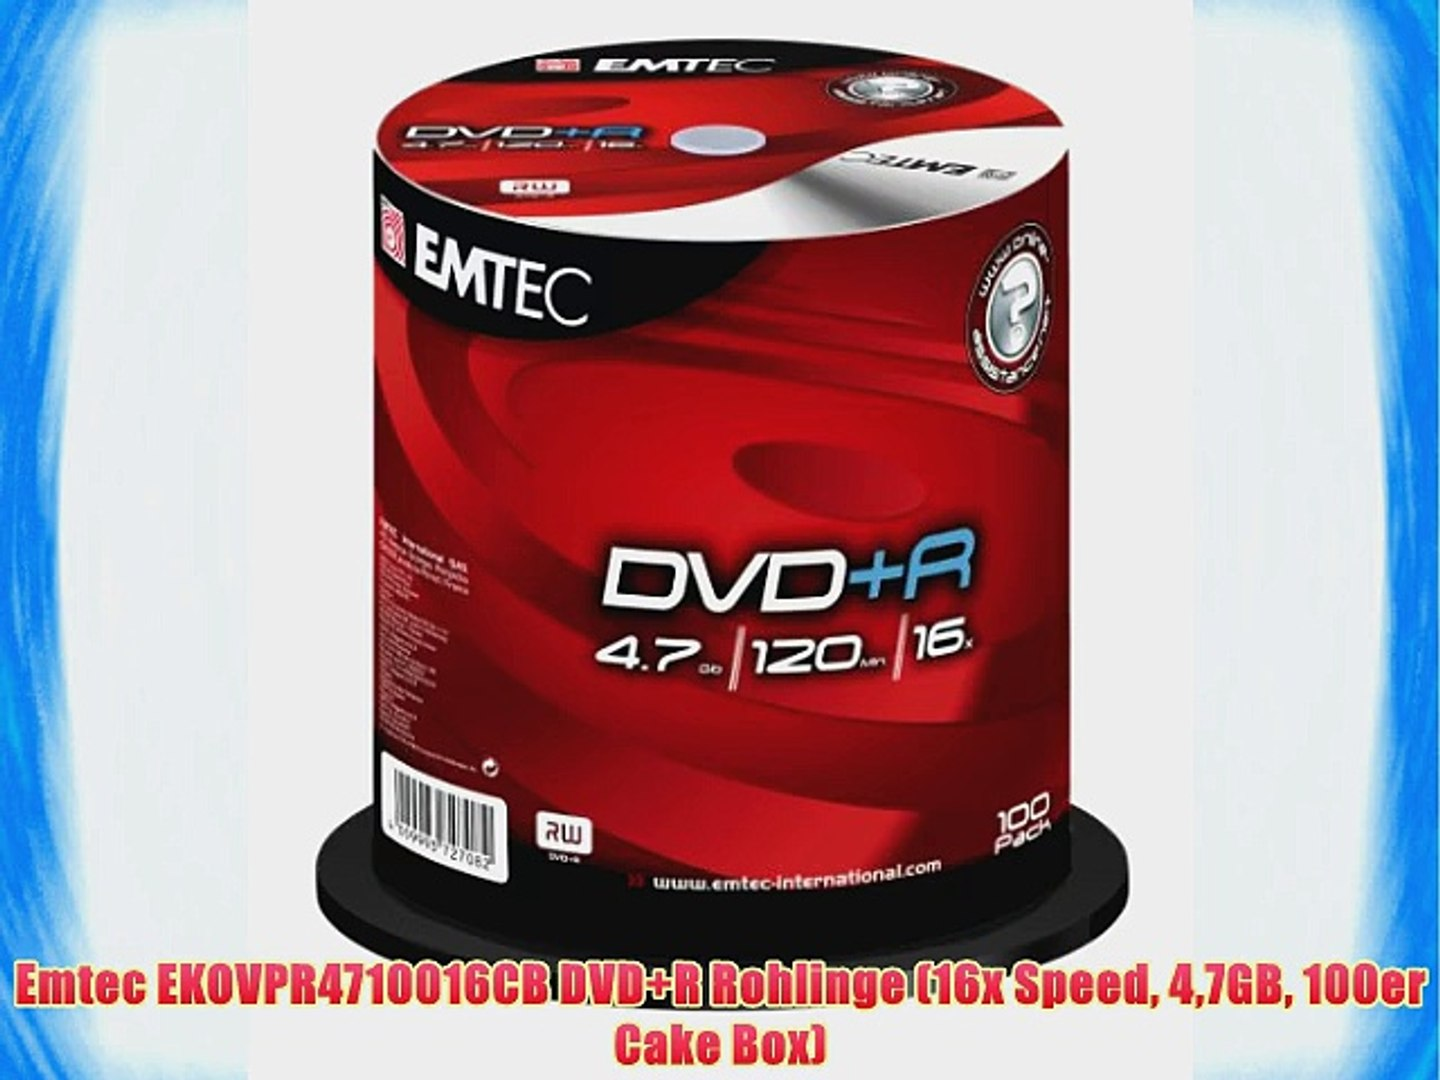 picture relating to Printable Dvd Rohlinge identified as Emtec EKOVPR4710016CB DVD R Rohlinge (16x Rate 47GB 100er Cake Box)